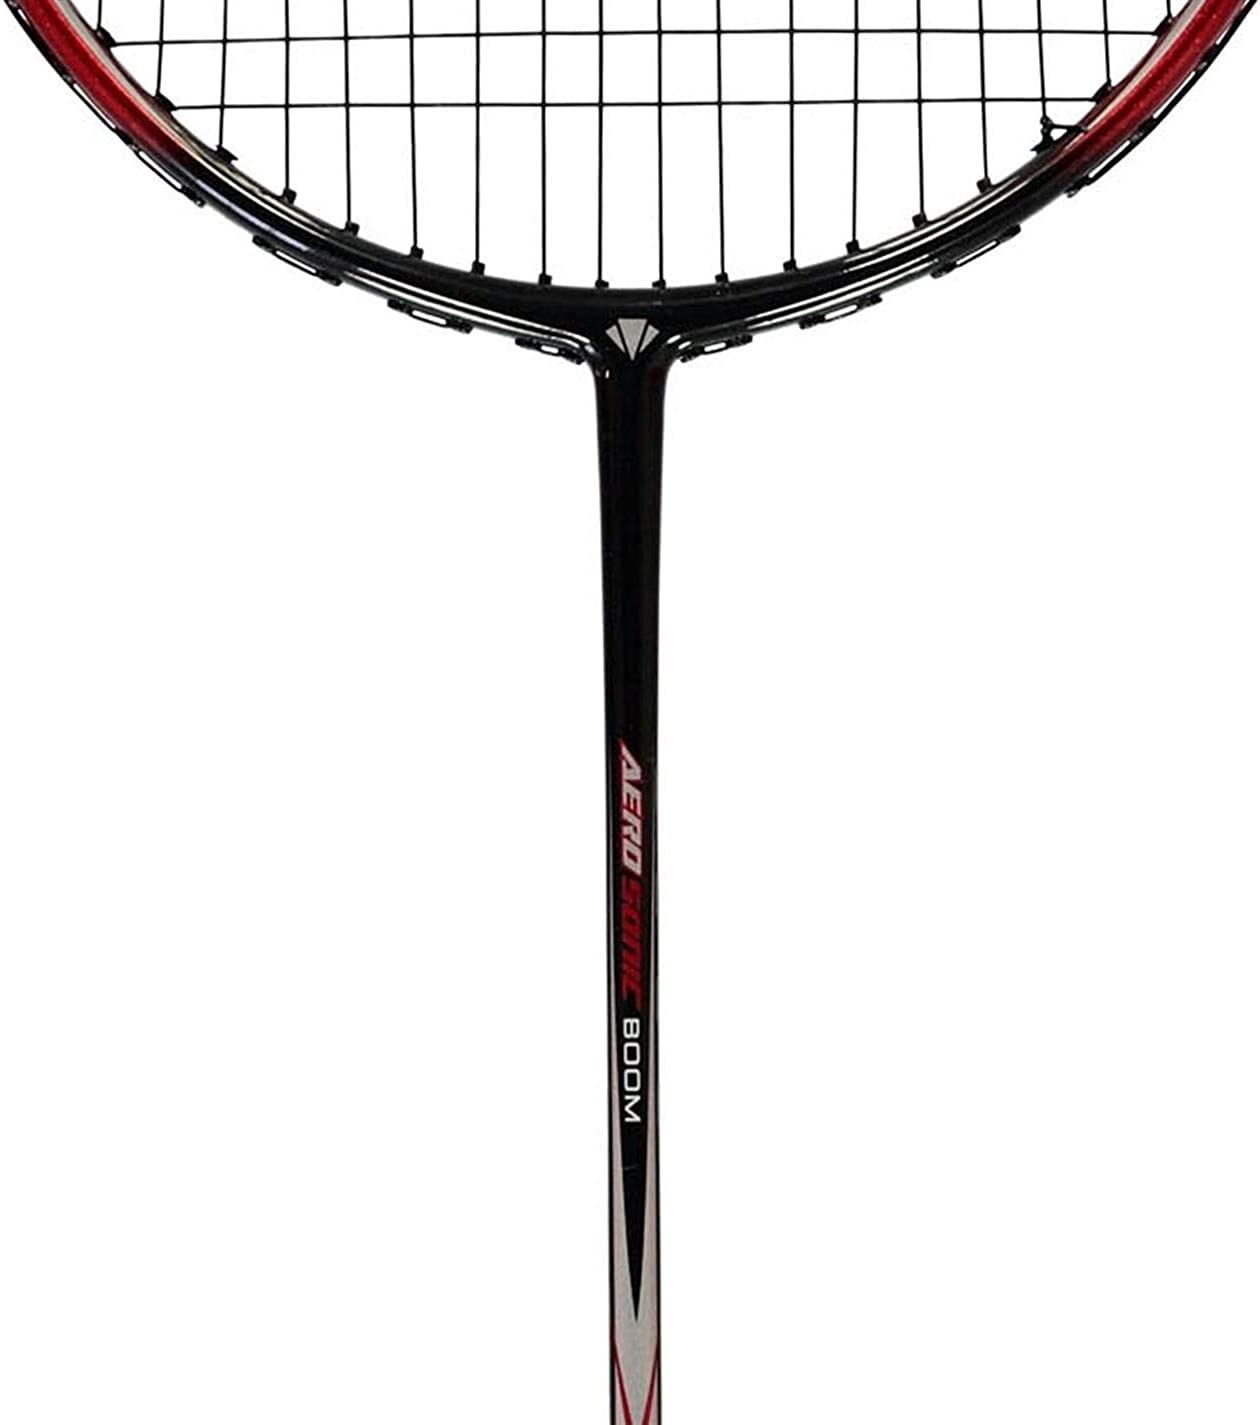 Carlton Unisex Aero Blast Badminton Racket Graphite Yellow//Black One Size